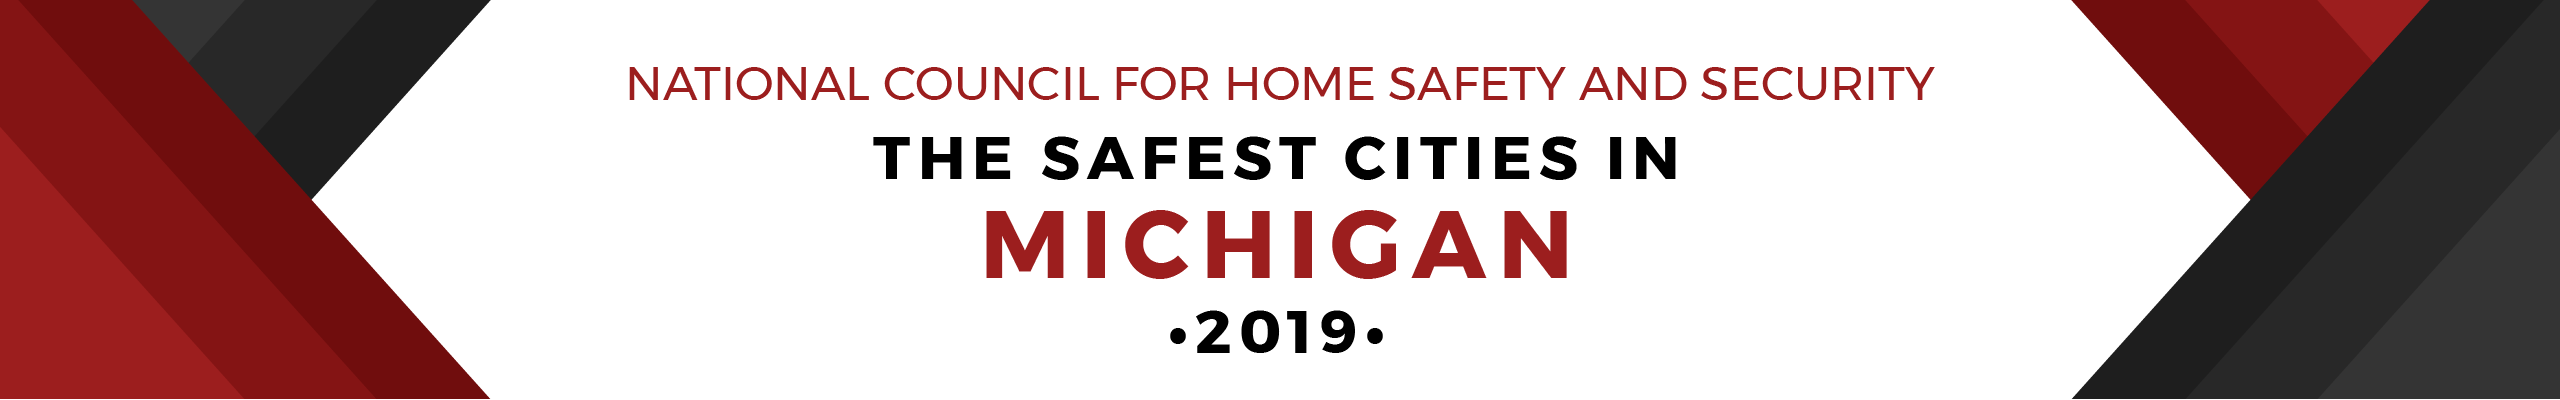 Safest Cities Michigan - header